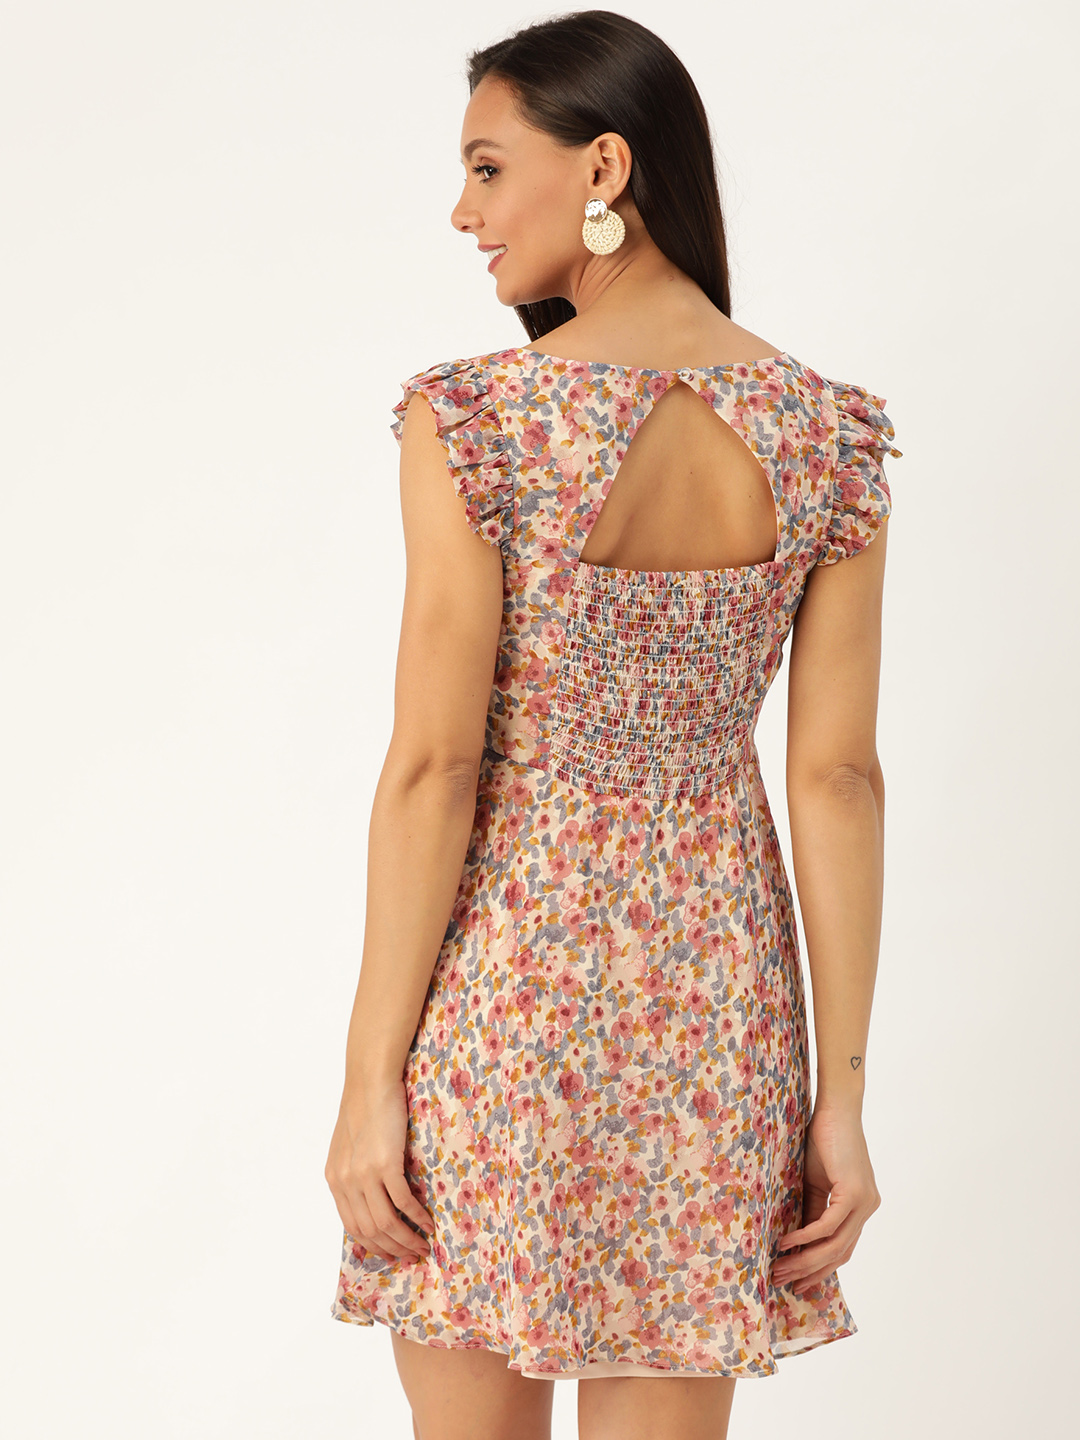 Dresses-Dressed To Frill Floral Dress3